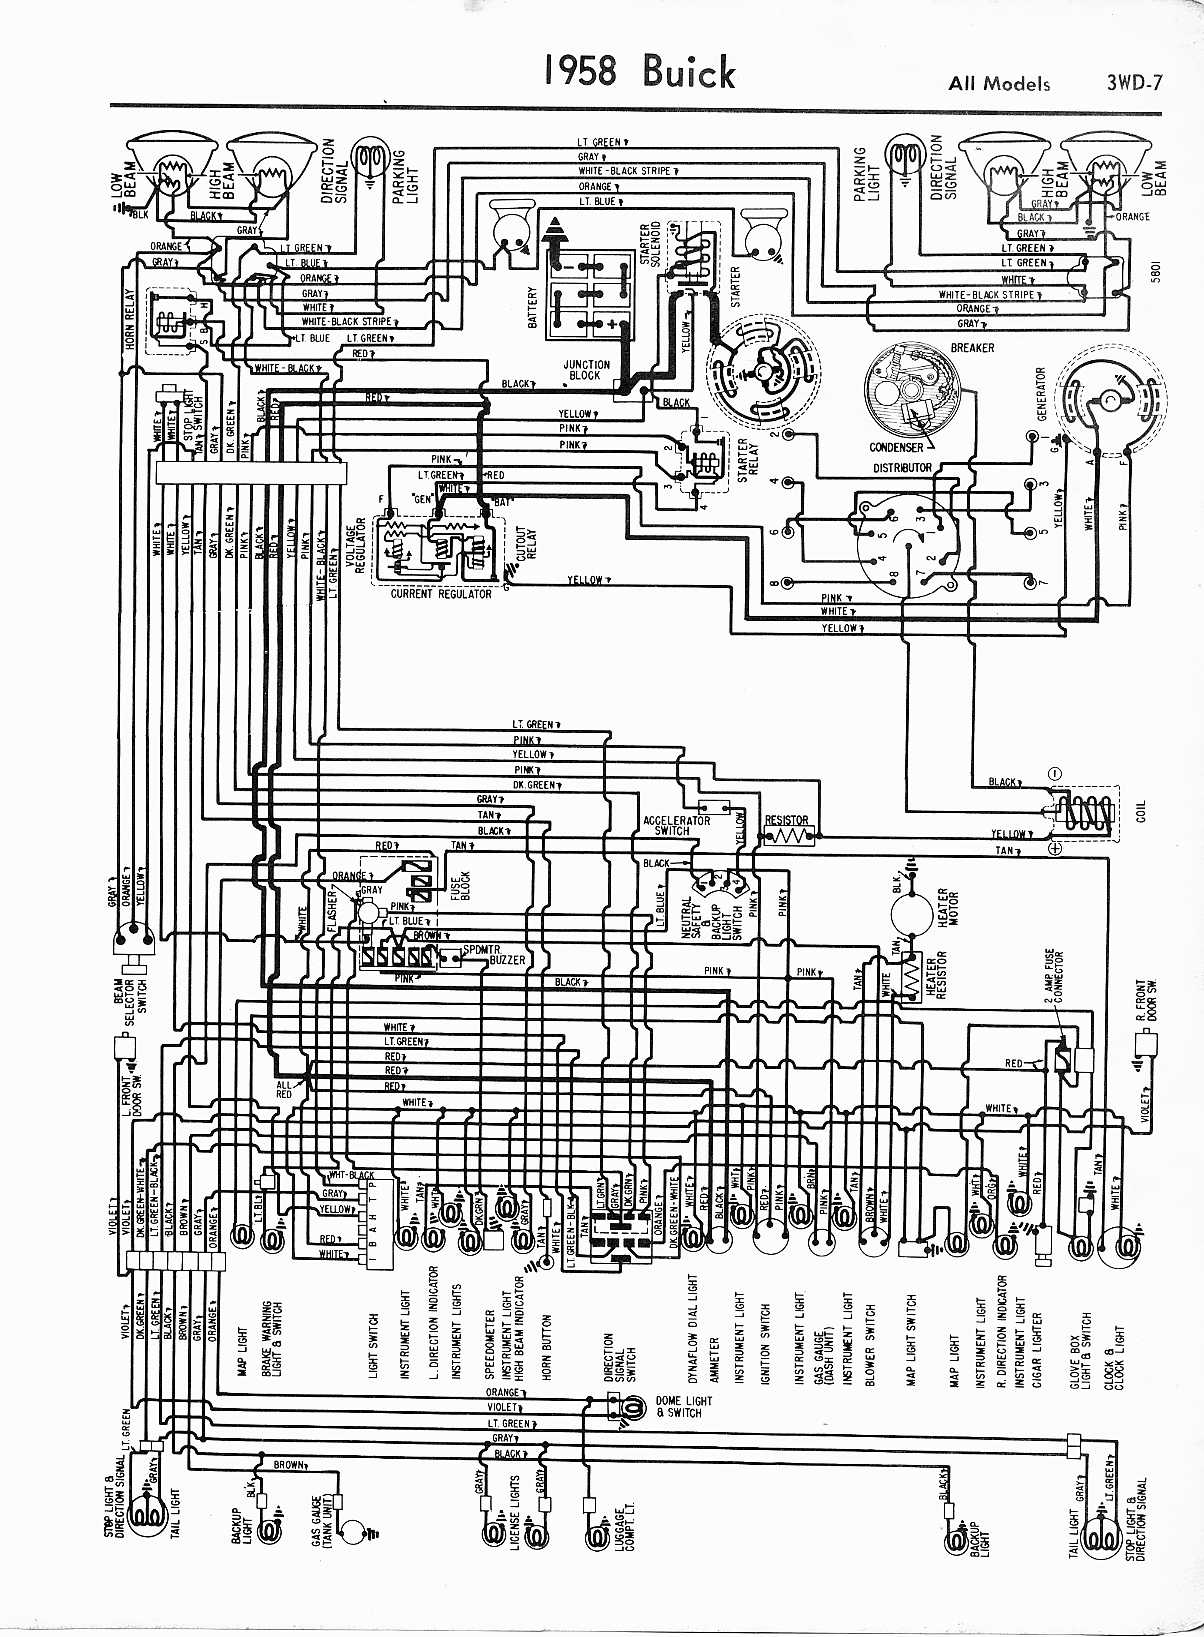 wiring diagram for 1960 buick all models wire data u2022 rh coller site 2010 Buick Lacrosse Wiring-Diagram 2010 Buick Lacrosse Wiring-Diagram